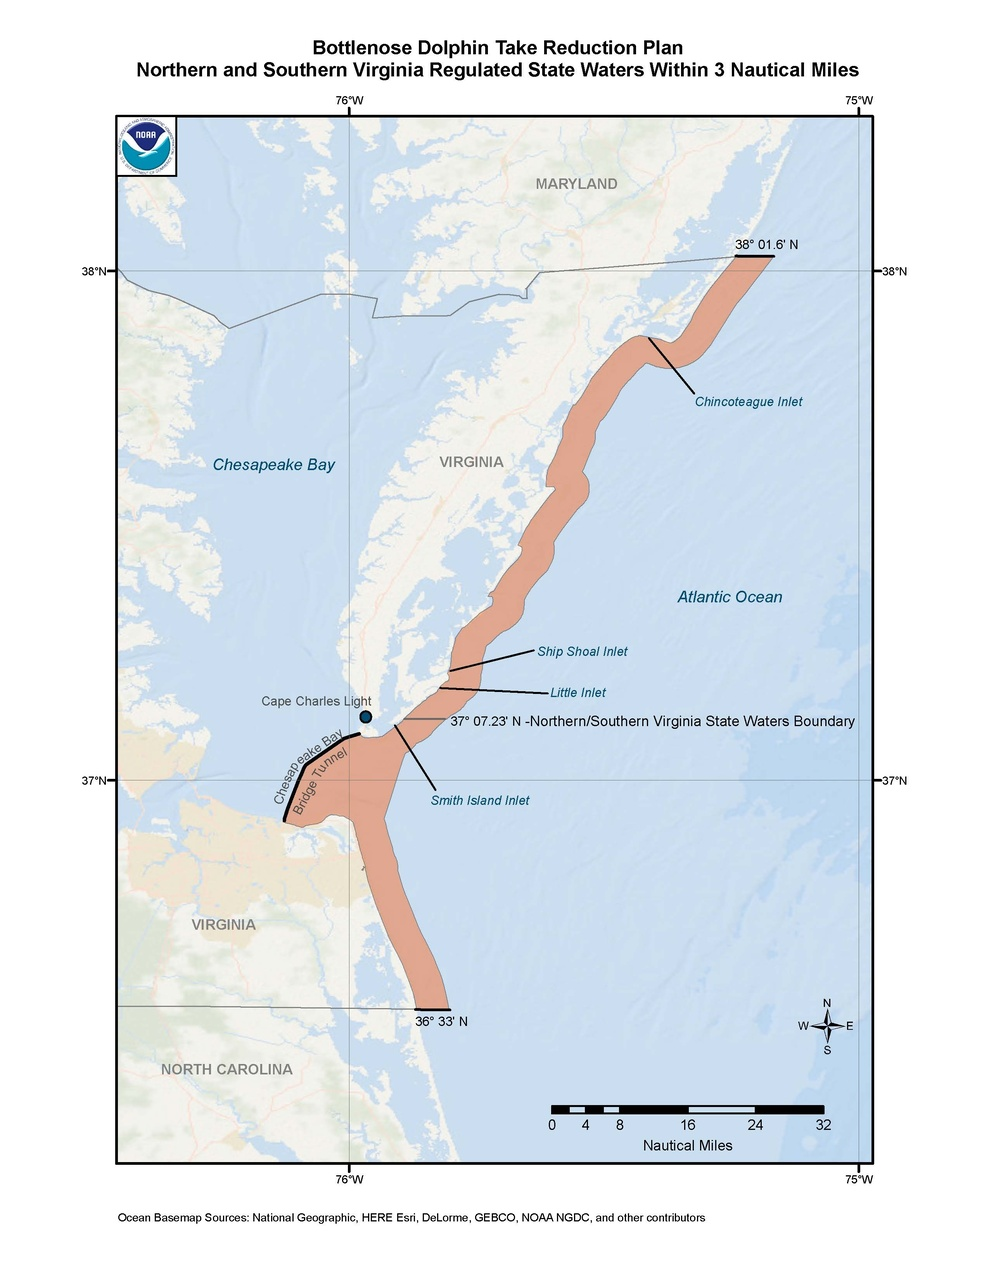 This is a map of the Bottlenose Dolphin Take Reduction Plan for northern and southern Virginia.